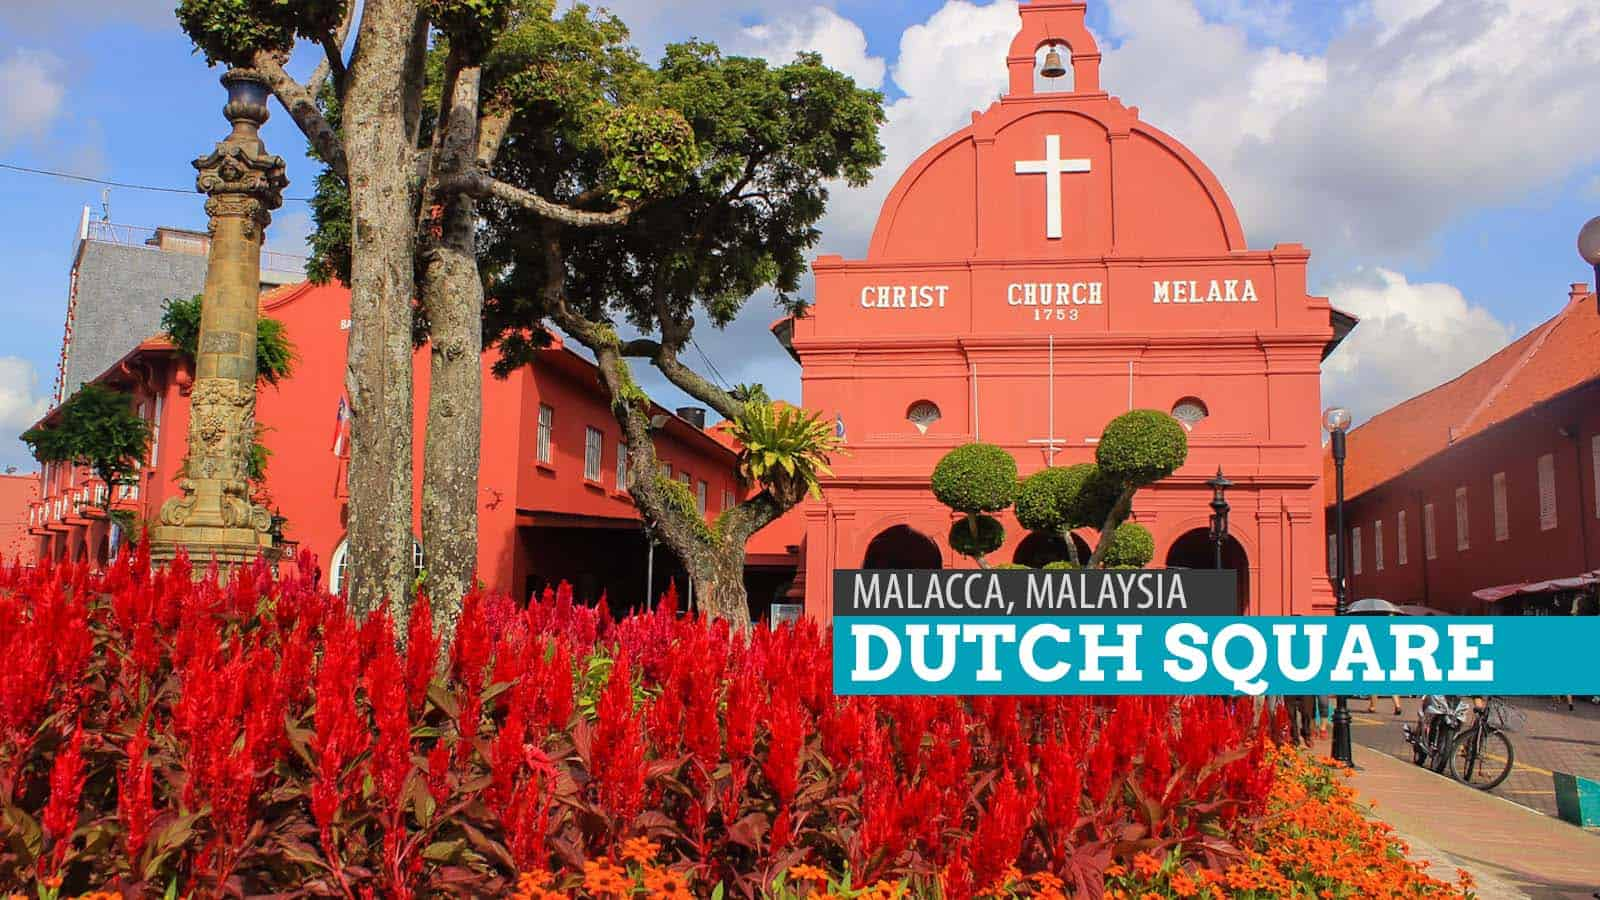 THE DUTCH SQUARE IN MALACCA, MALAYSIA